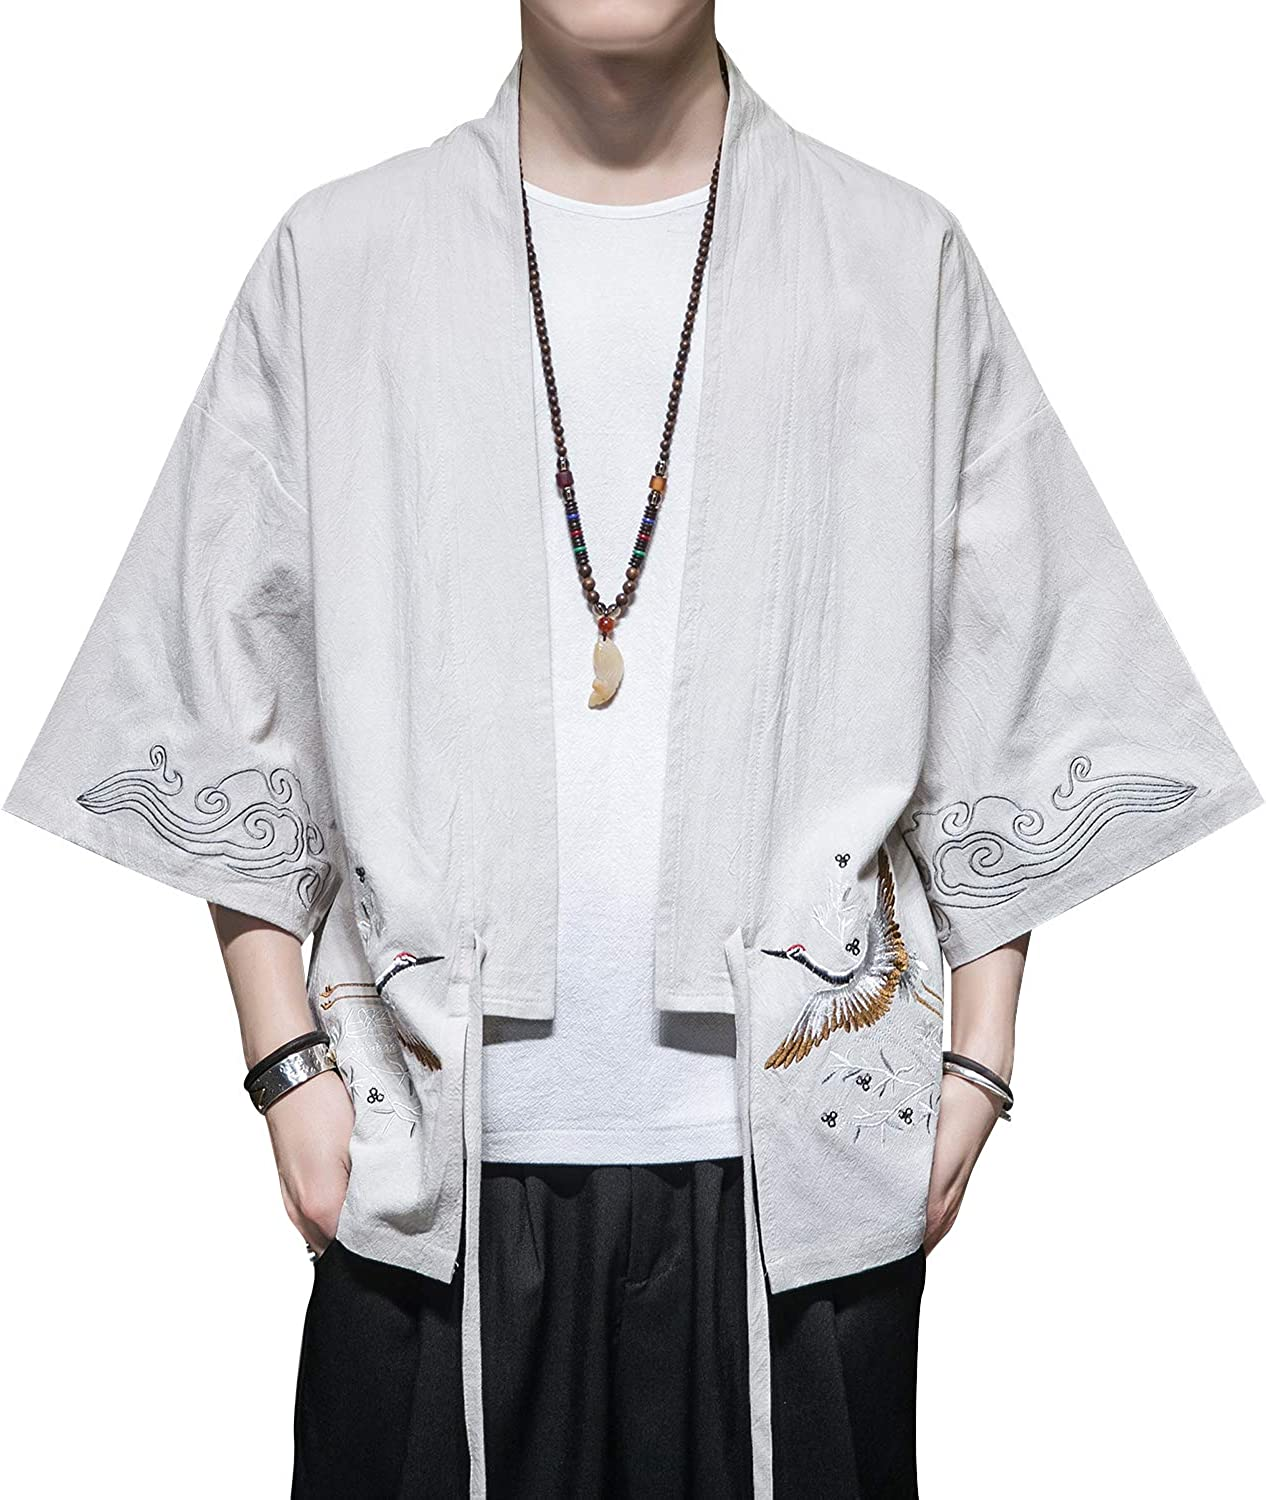 PRIJOUHE Mens Kimono Jackets Cardigan Casual Cotton Blends Linen Seven Sleeve Open Front Embroidery Coat